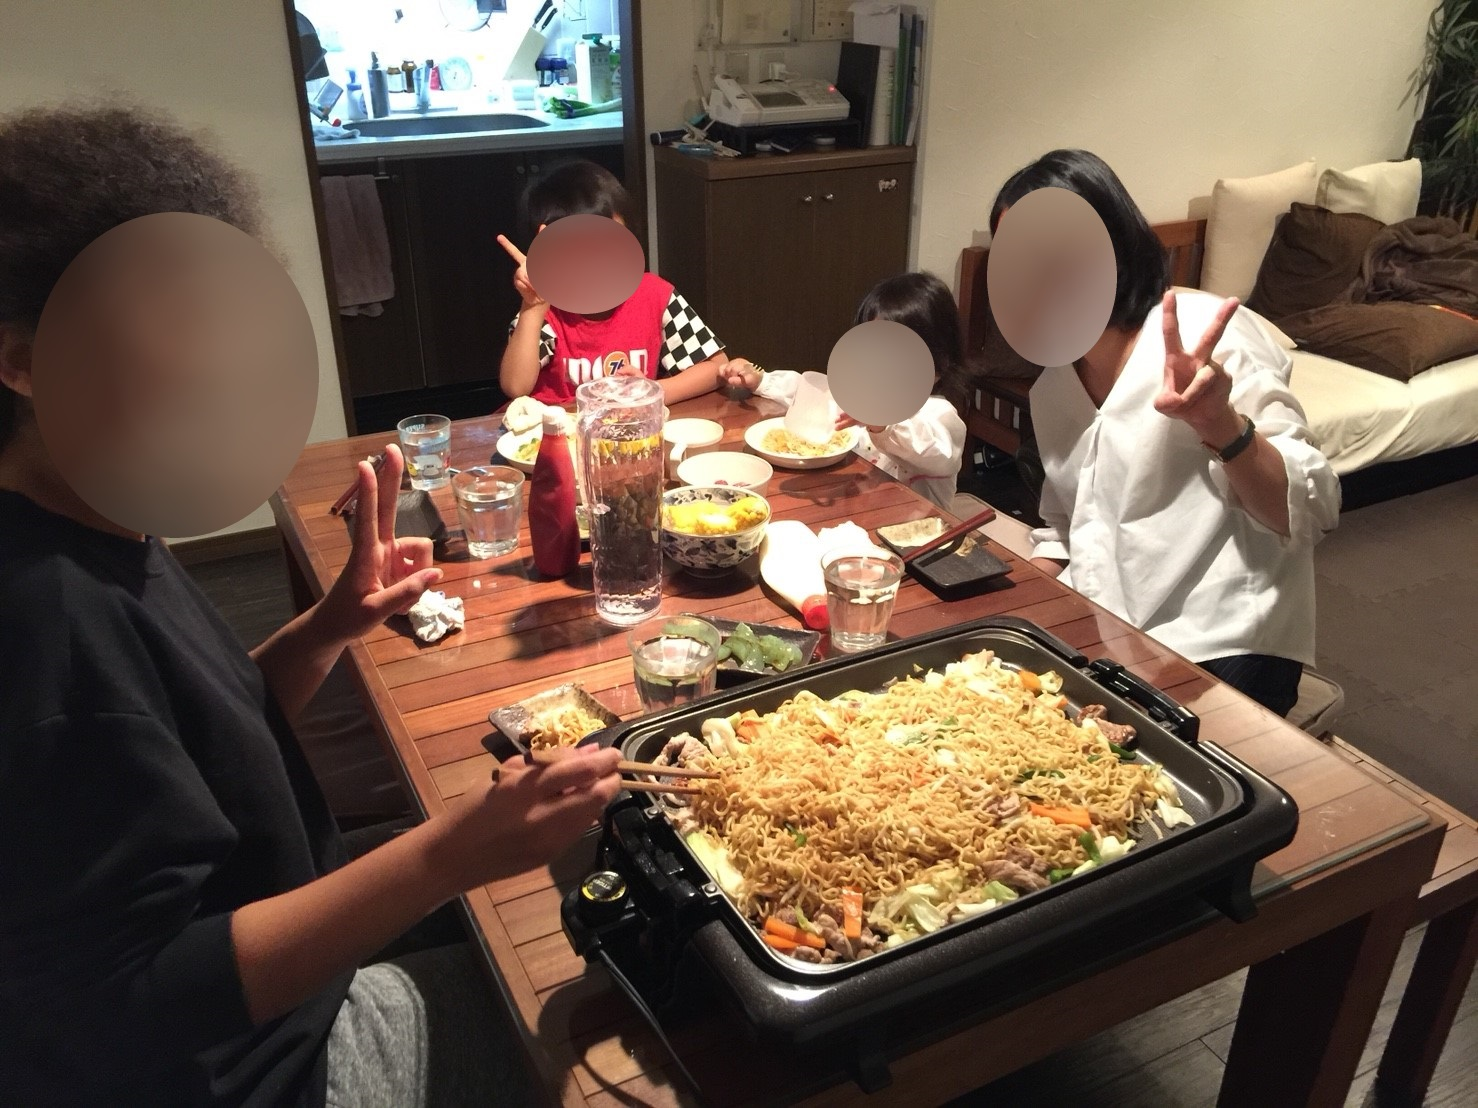 8 Me, my hostbrother, his friend and his friend's mother eating Yakisoba